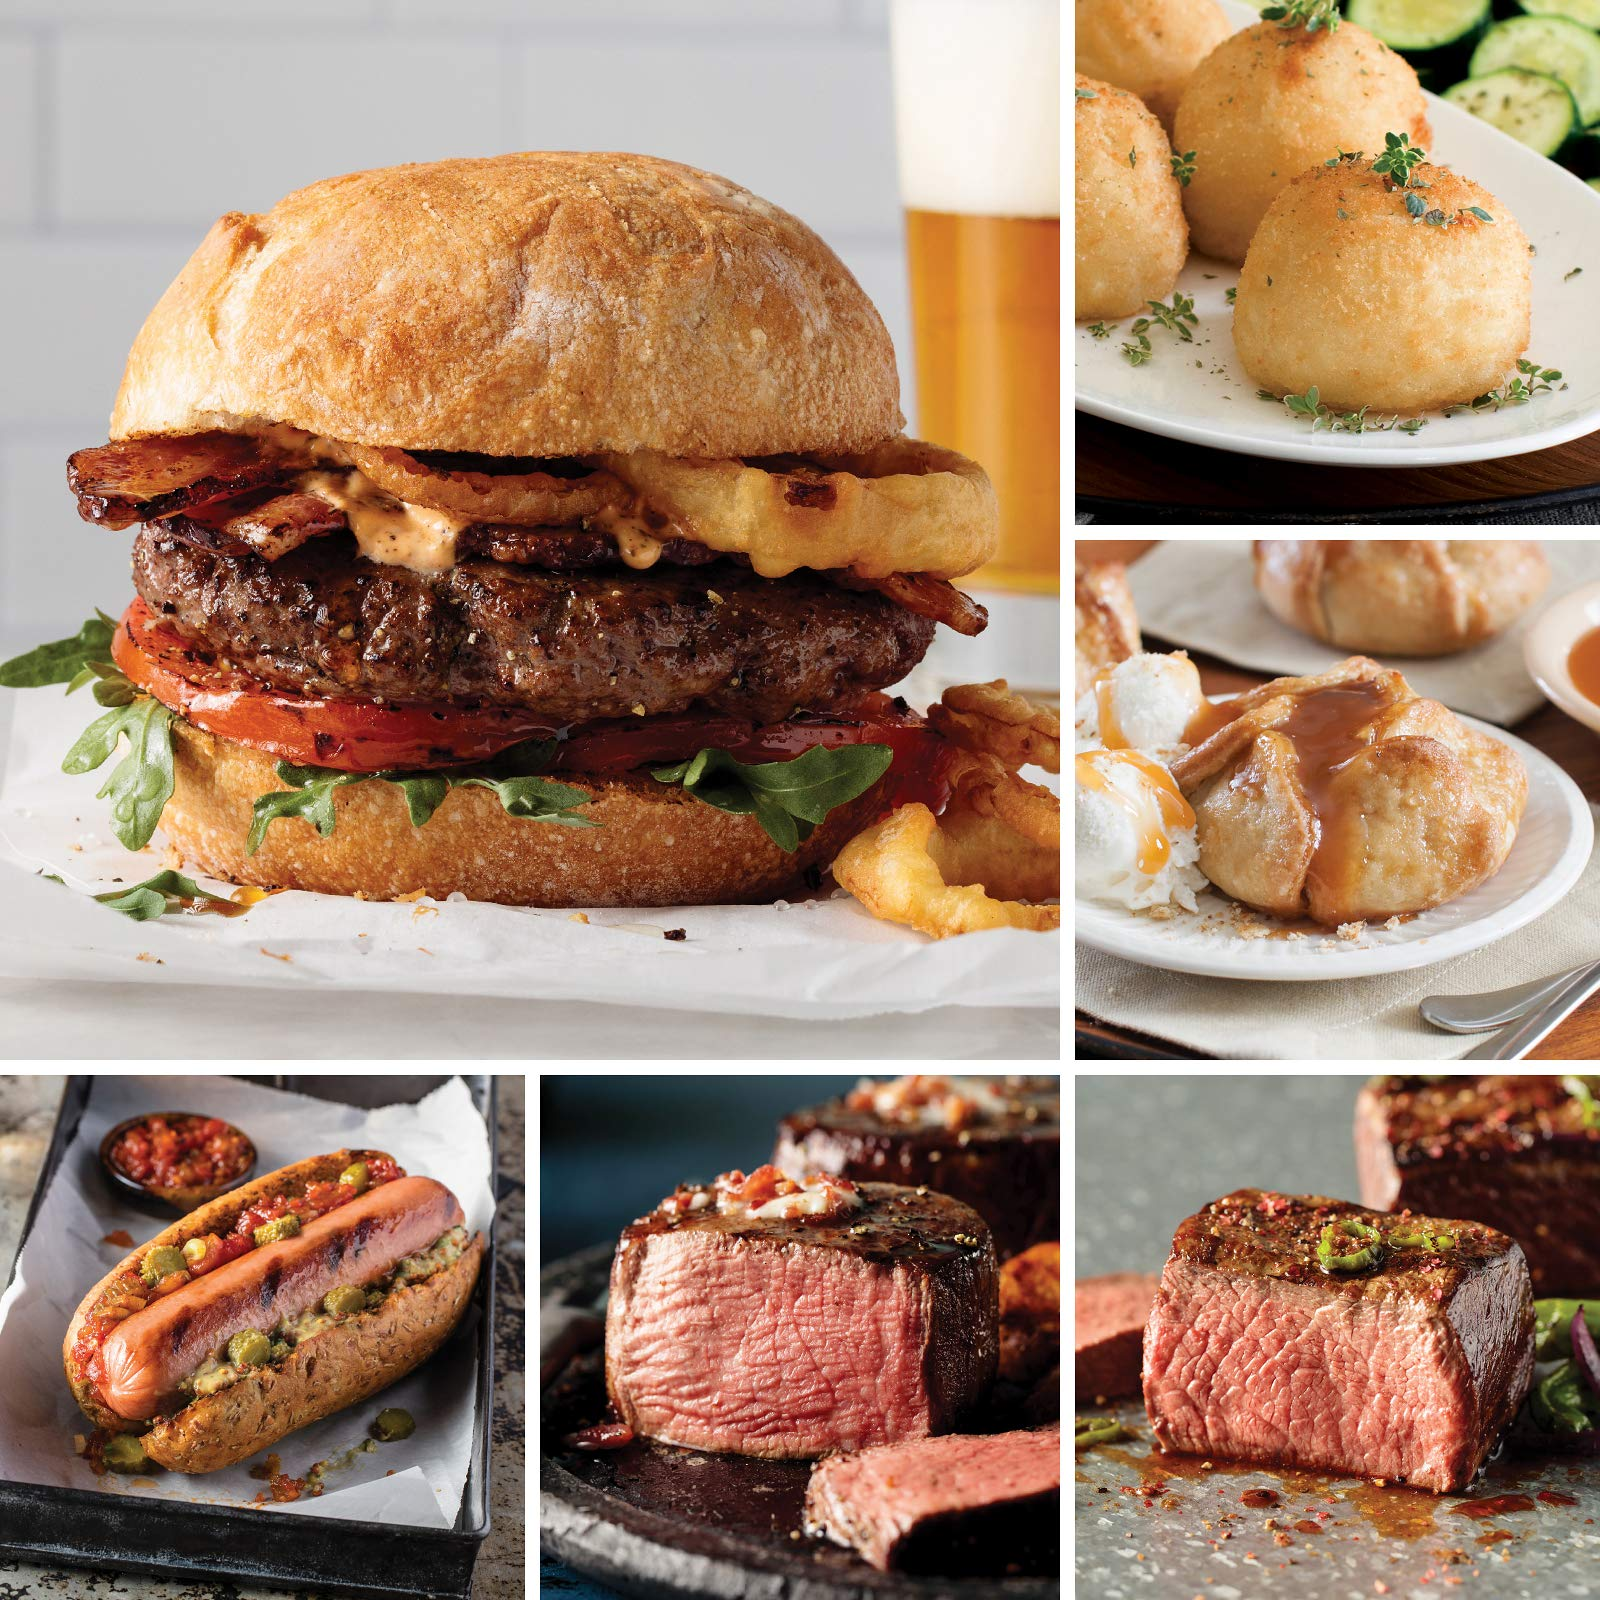 Omaha Steaks Christmas Assortment (20-Piece with Top Sirloins, Filet Mignons, Steak Burgers, Jumbo Franks, and Potatoes Au Gratin) by Omaha Steaks (Image #1)